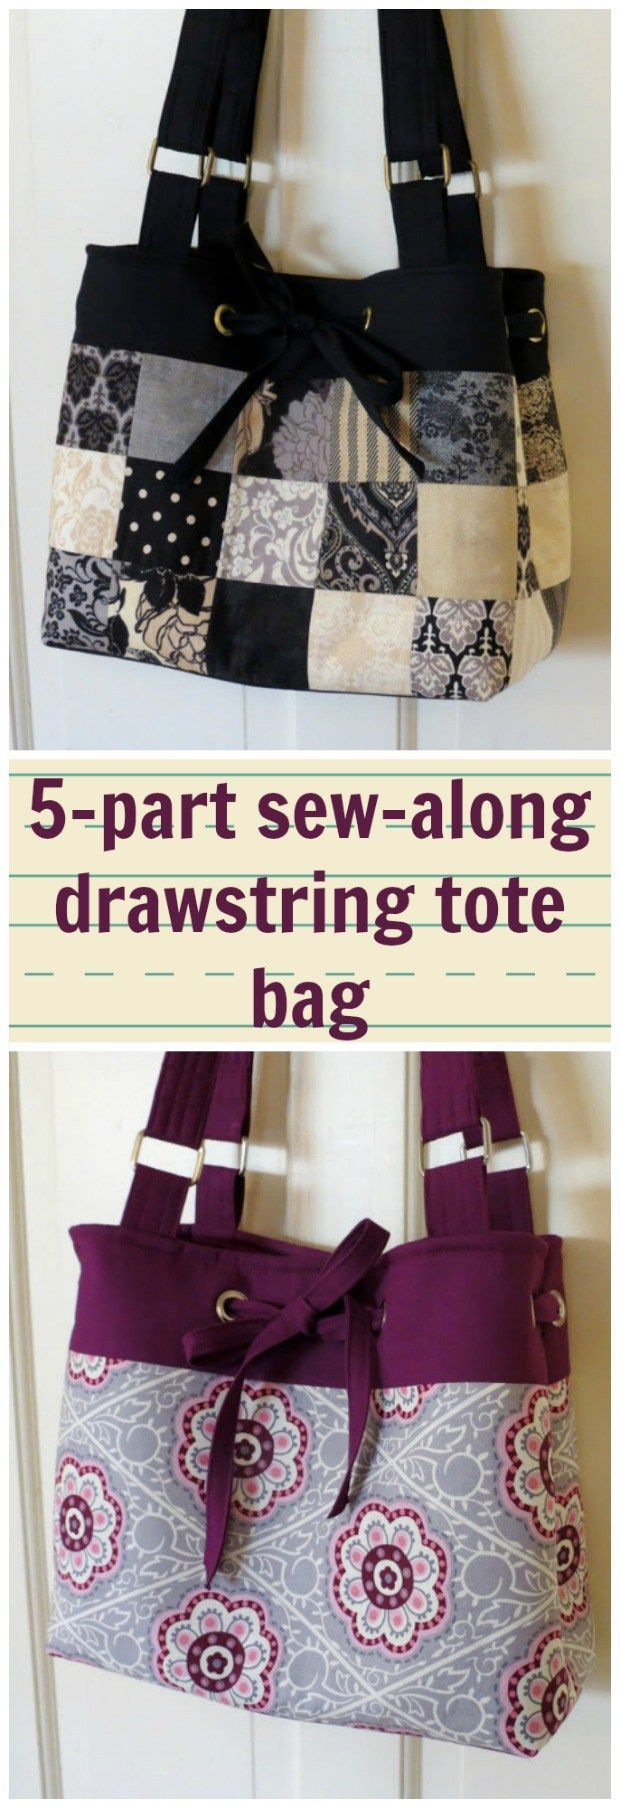 Full 5-part sew-along tutorial for how to make this drawstring purse.  Can be made in patchwork too - instructions to that option as well.  I learned lots of new bag skills and got a great bag at the end - great sew-along.